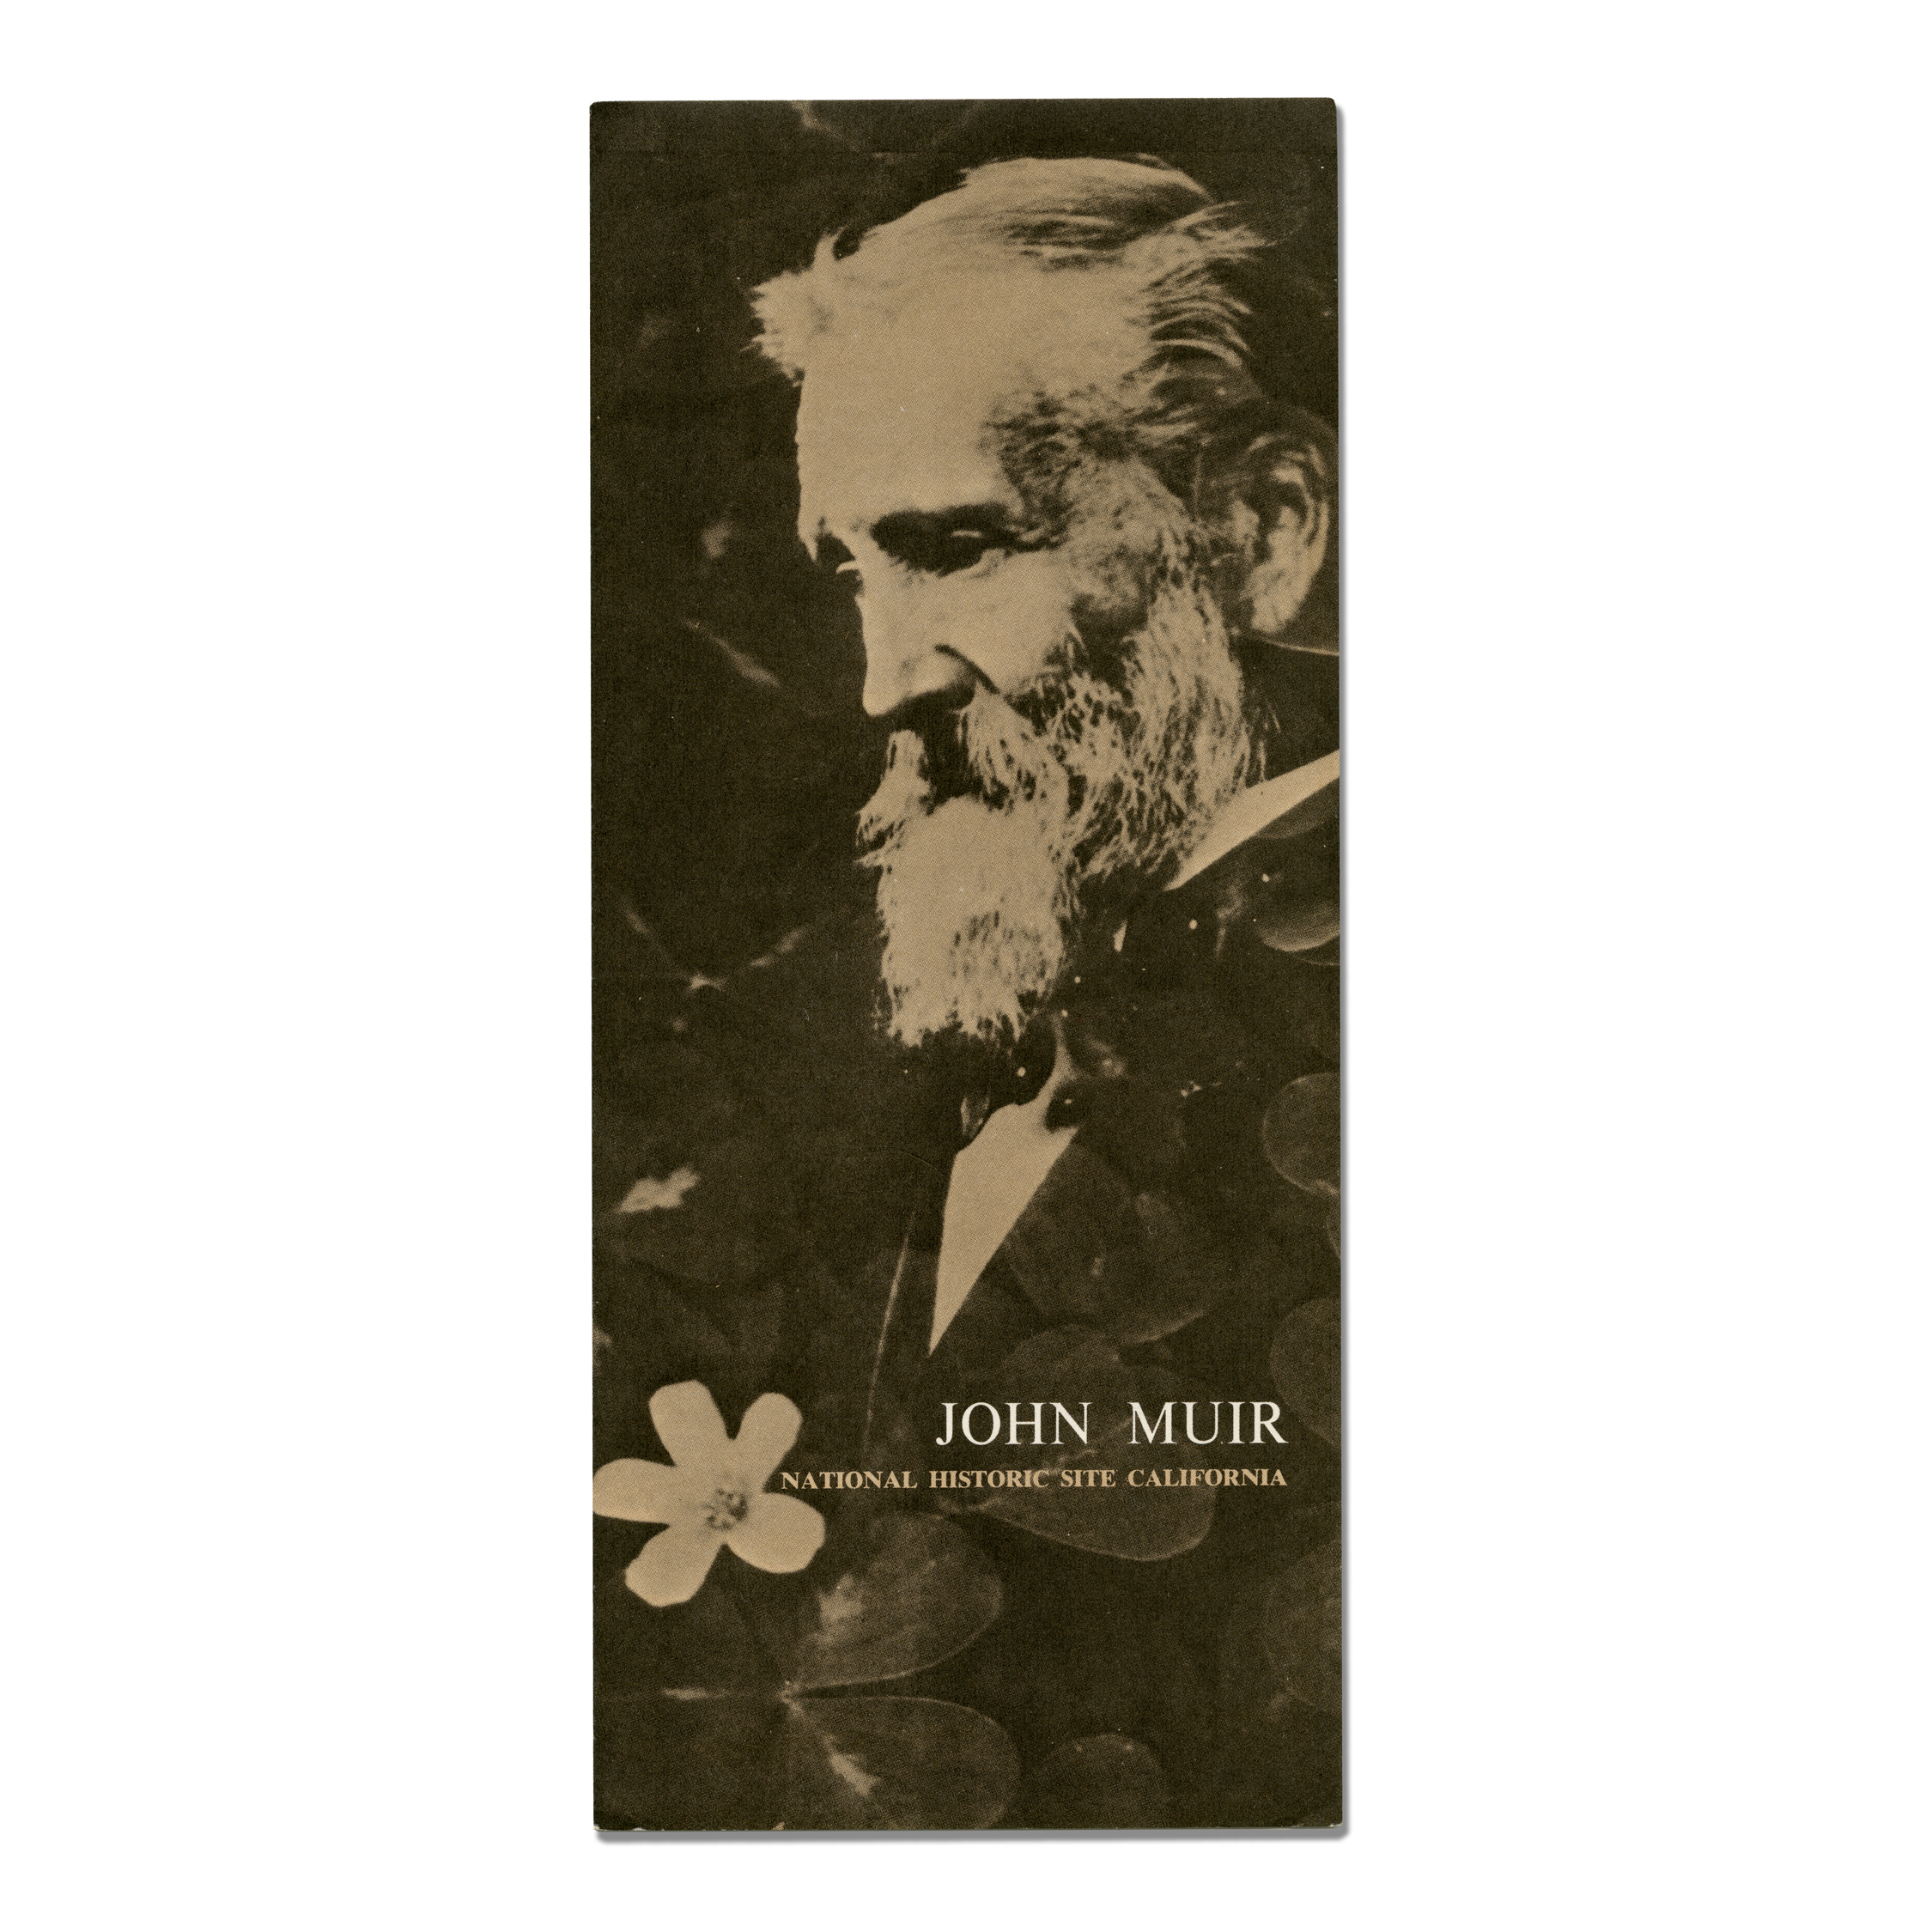 1974_john_muir_national_historic_site_brochure.jpg